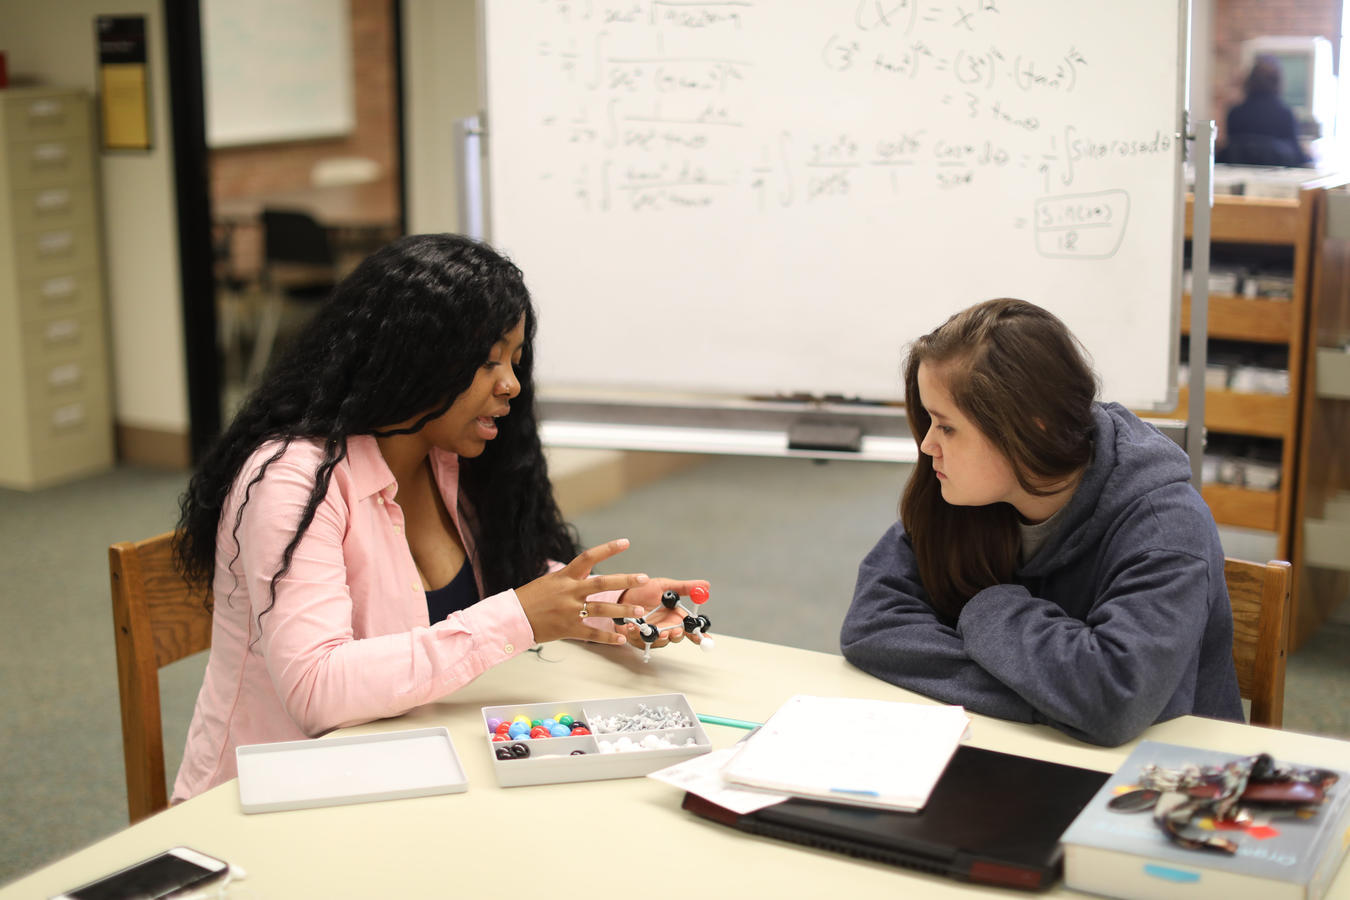 Two students engaged in a tutoring session